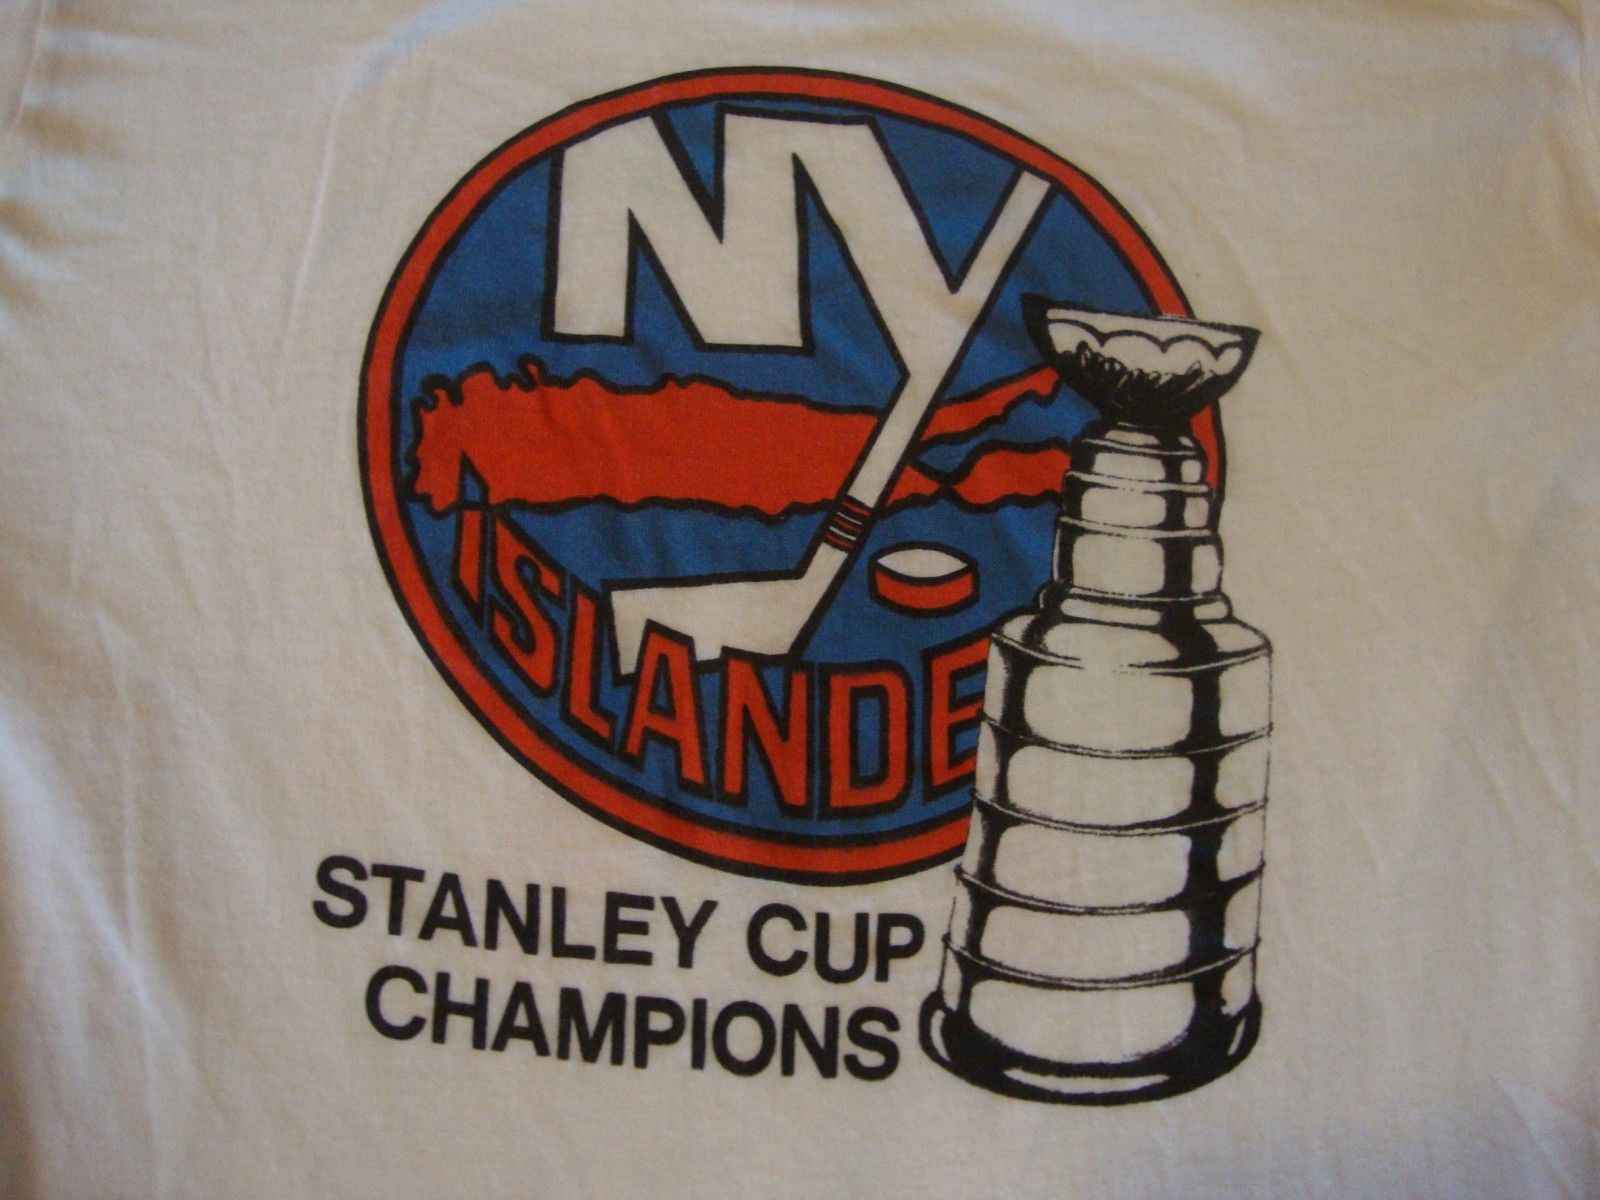 a4b0e6b5ca93 S l1600. S l1600. Previous. Vintage NHL 80's NEW YORK ISLANDERS Stanley Cup  Soft Paper Thin T Shirt ...